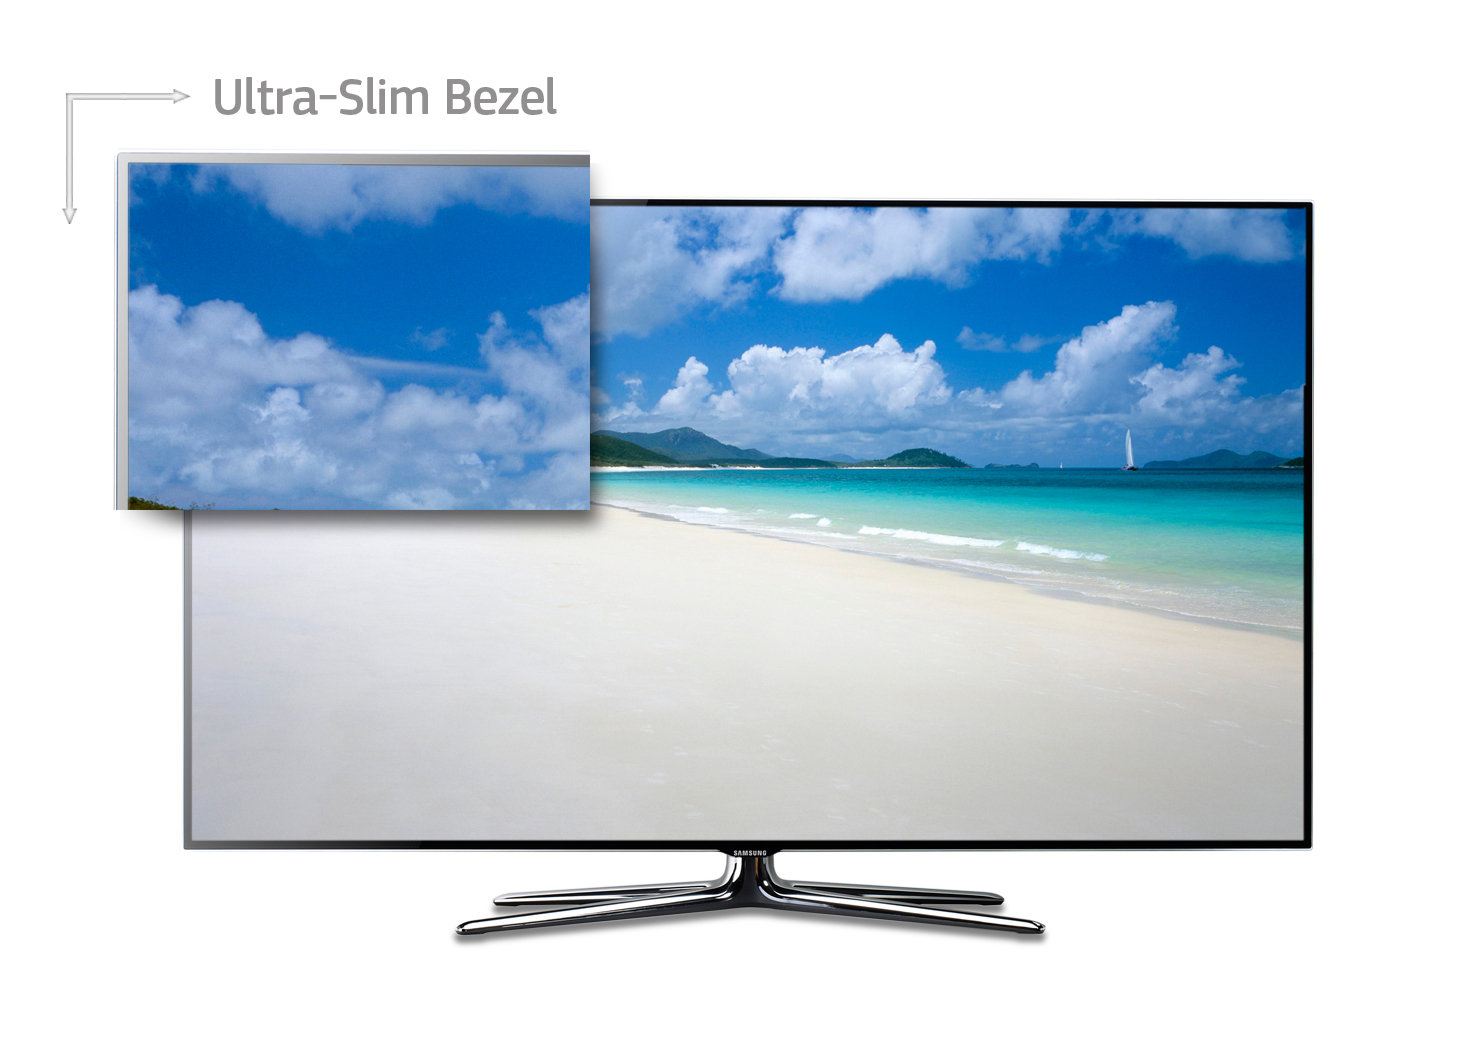 Amazon.com: Samsung UN55ES7500 55-Inch 1080p 240Hz 3D Slim